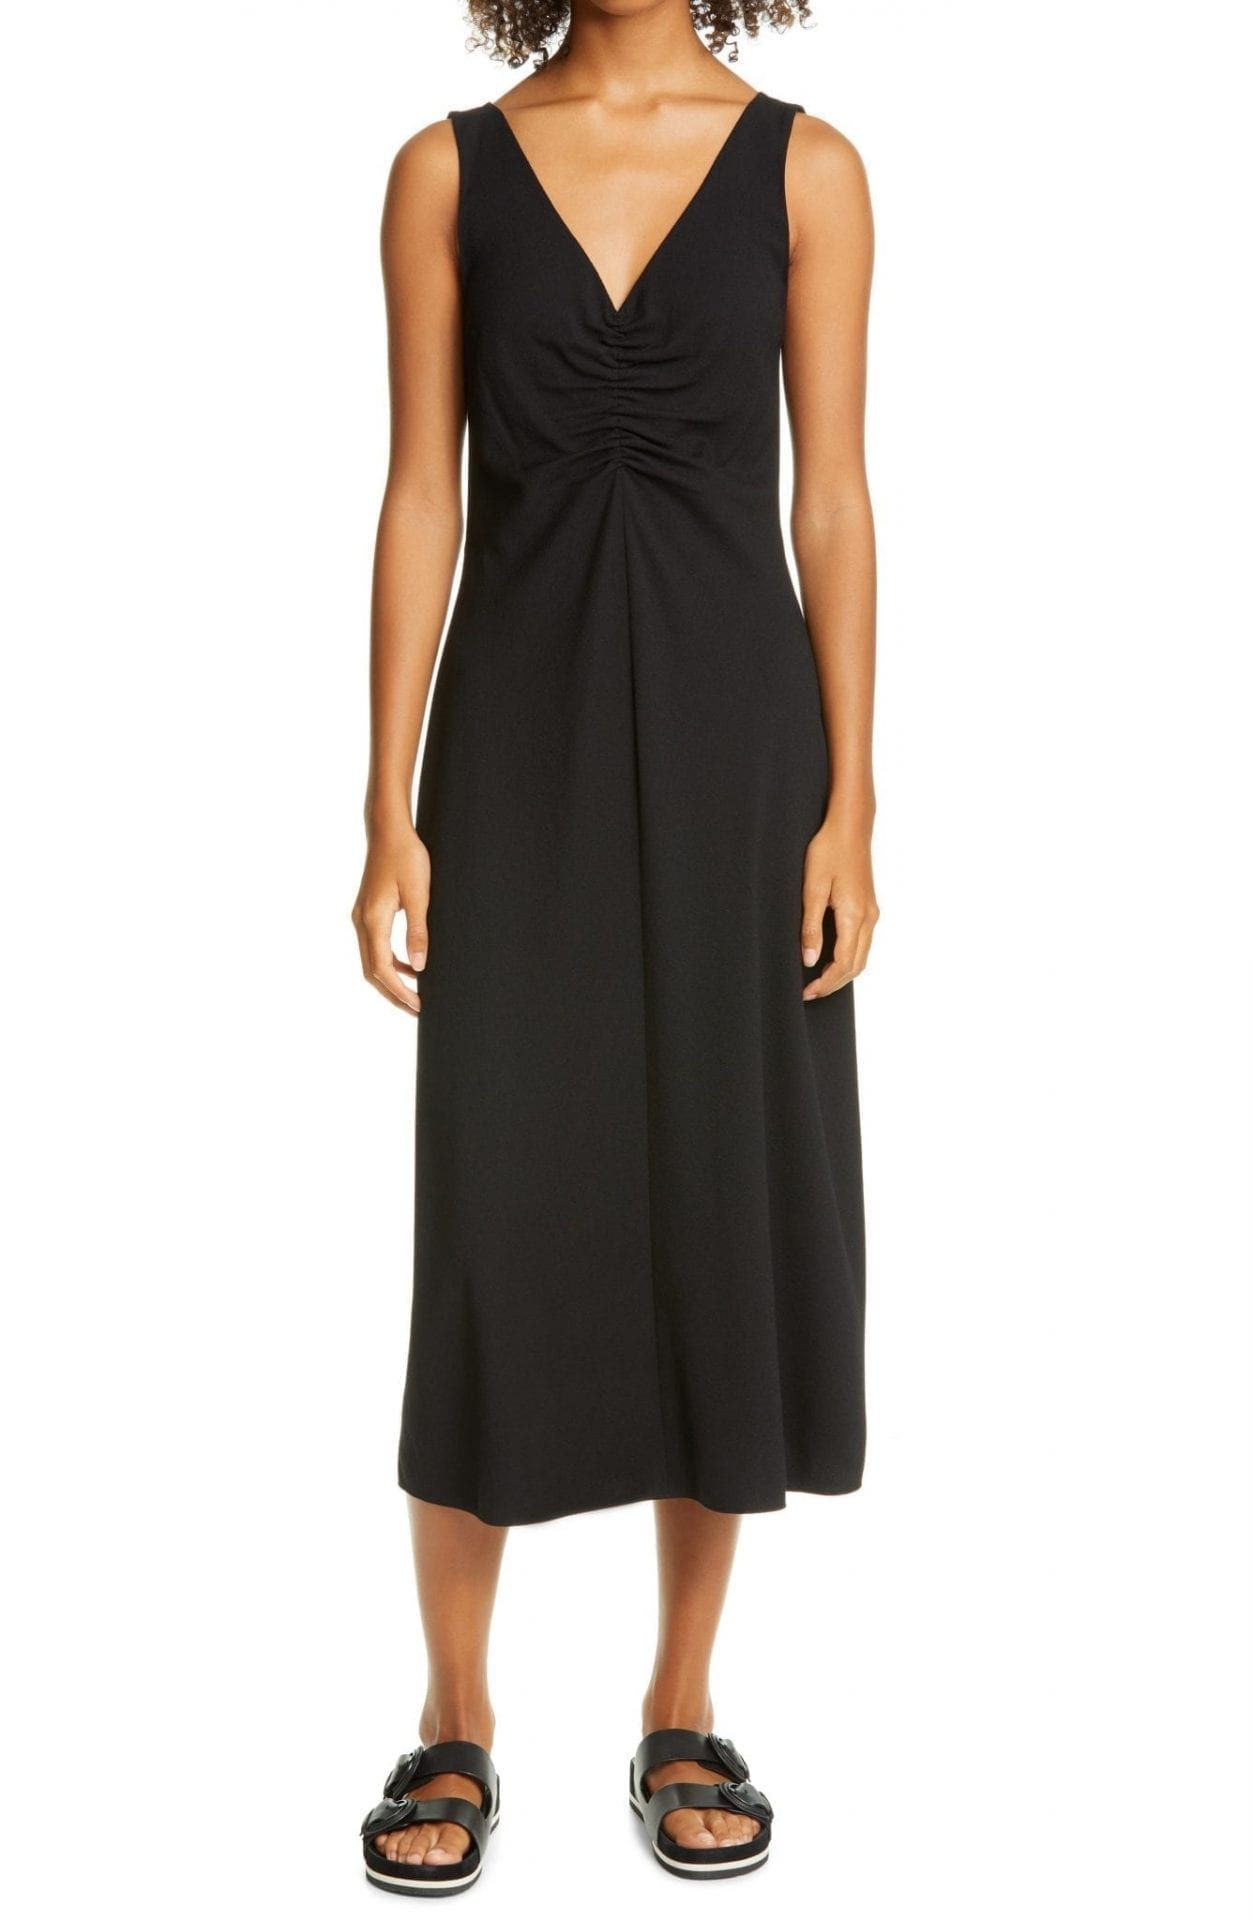 VINCE Ruched Neck Sleeveless Dress